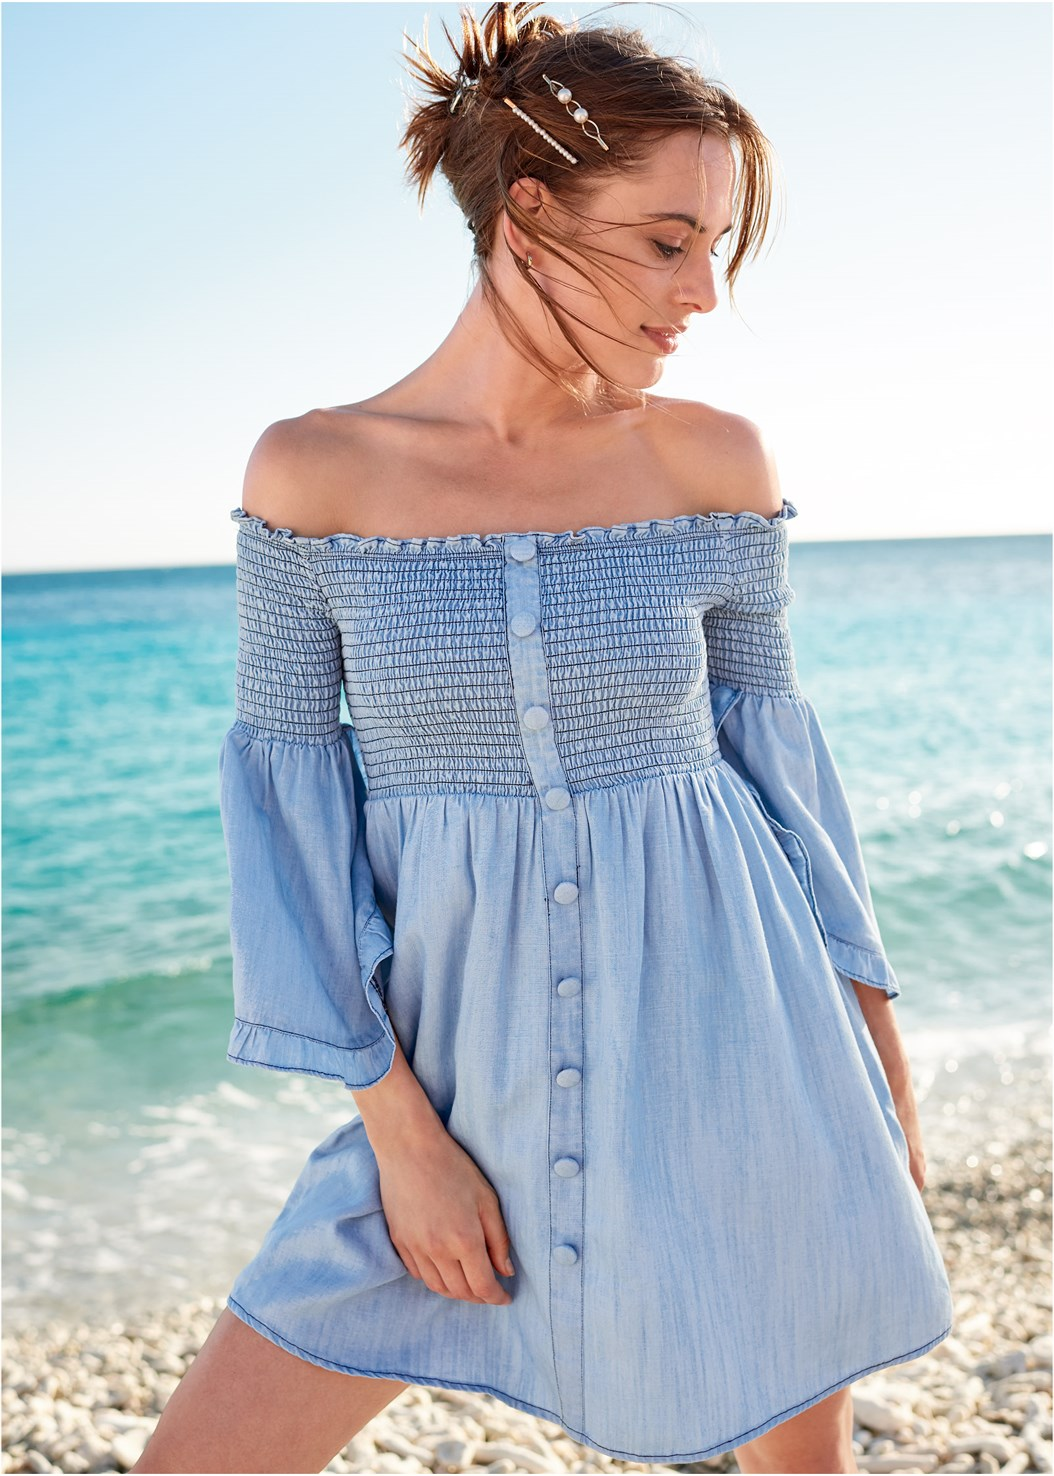 Off Shoulder Chambray Dress,Seamless Underwire Bandeau,Embellished Low Wedges,Beaded Fringe Earrings